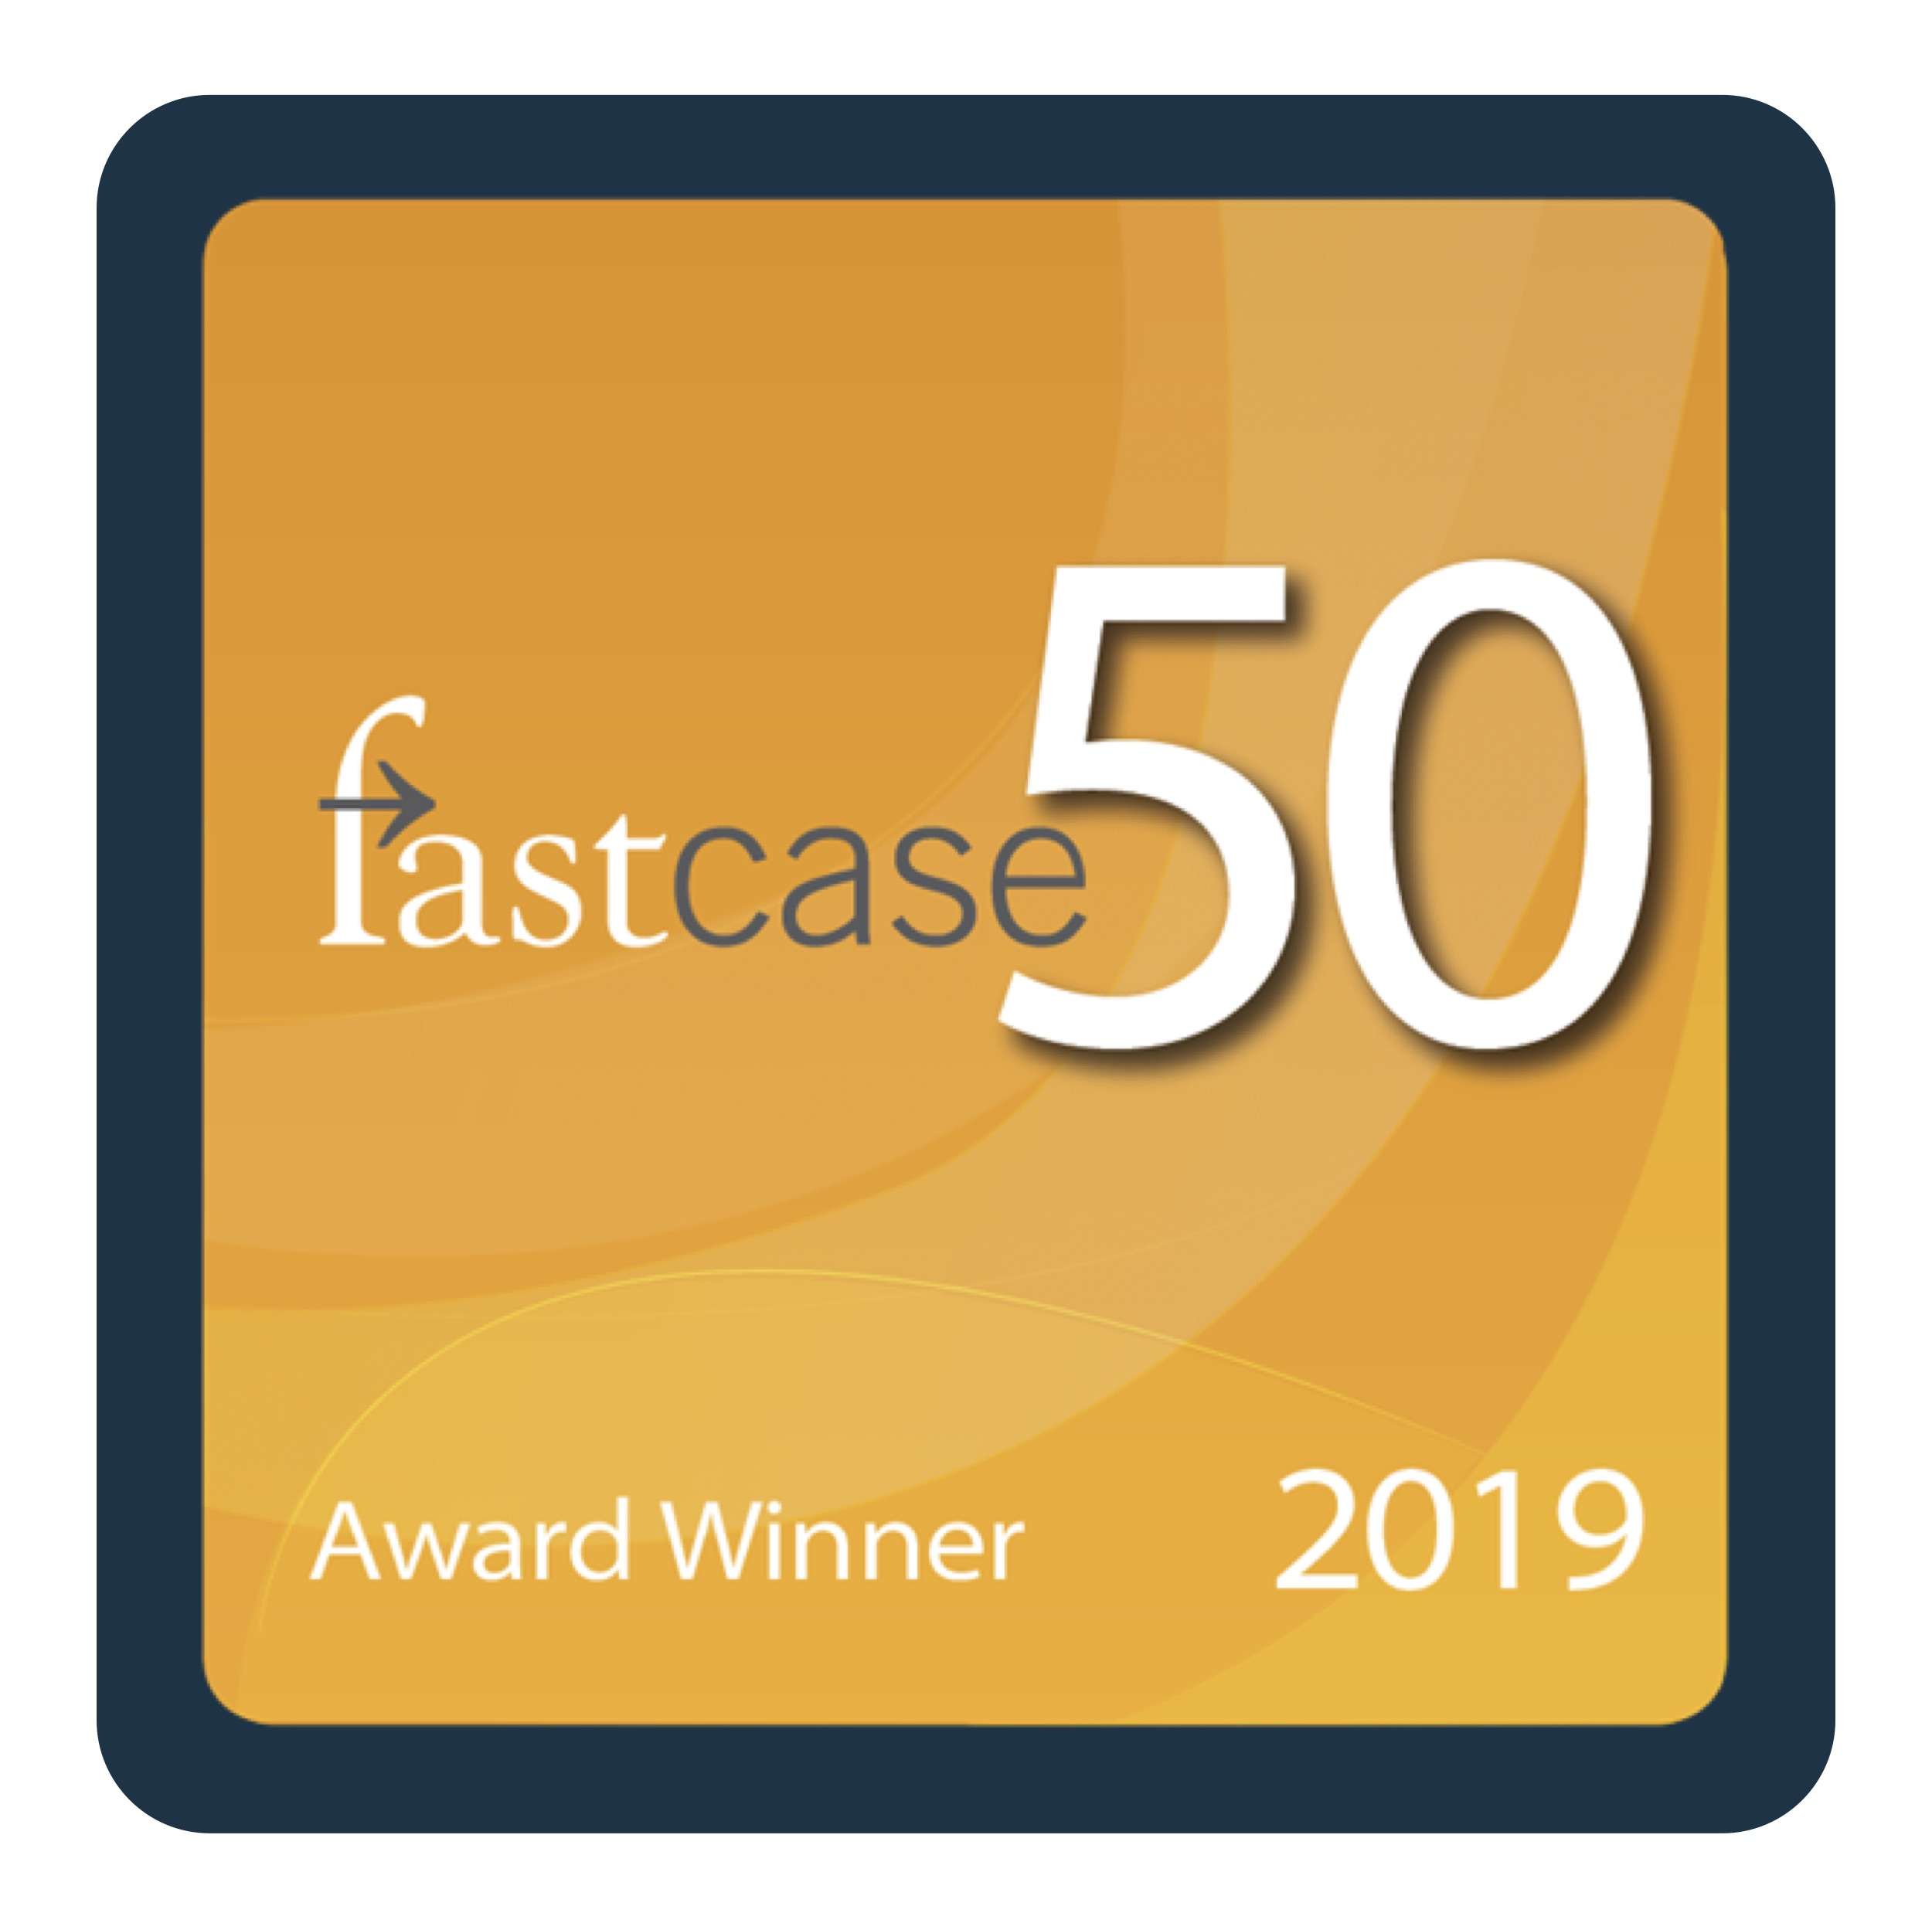 Fastcase 50 Award Winner